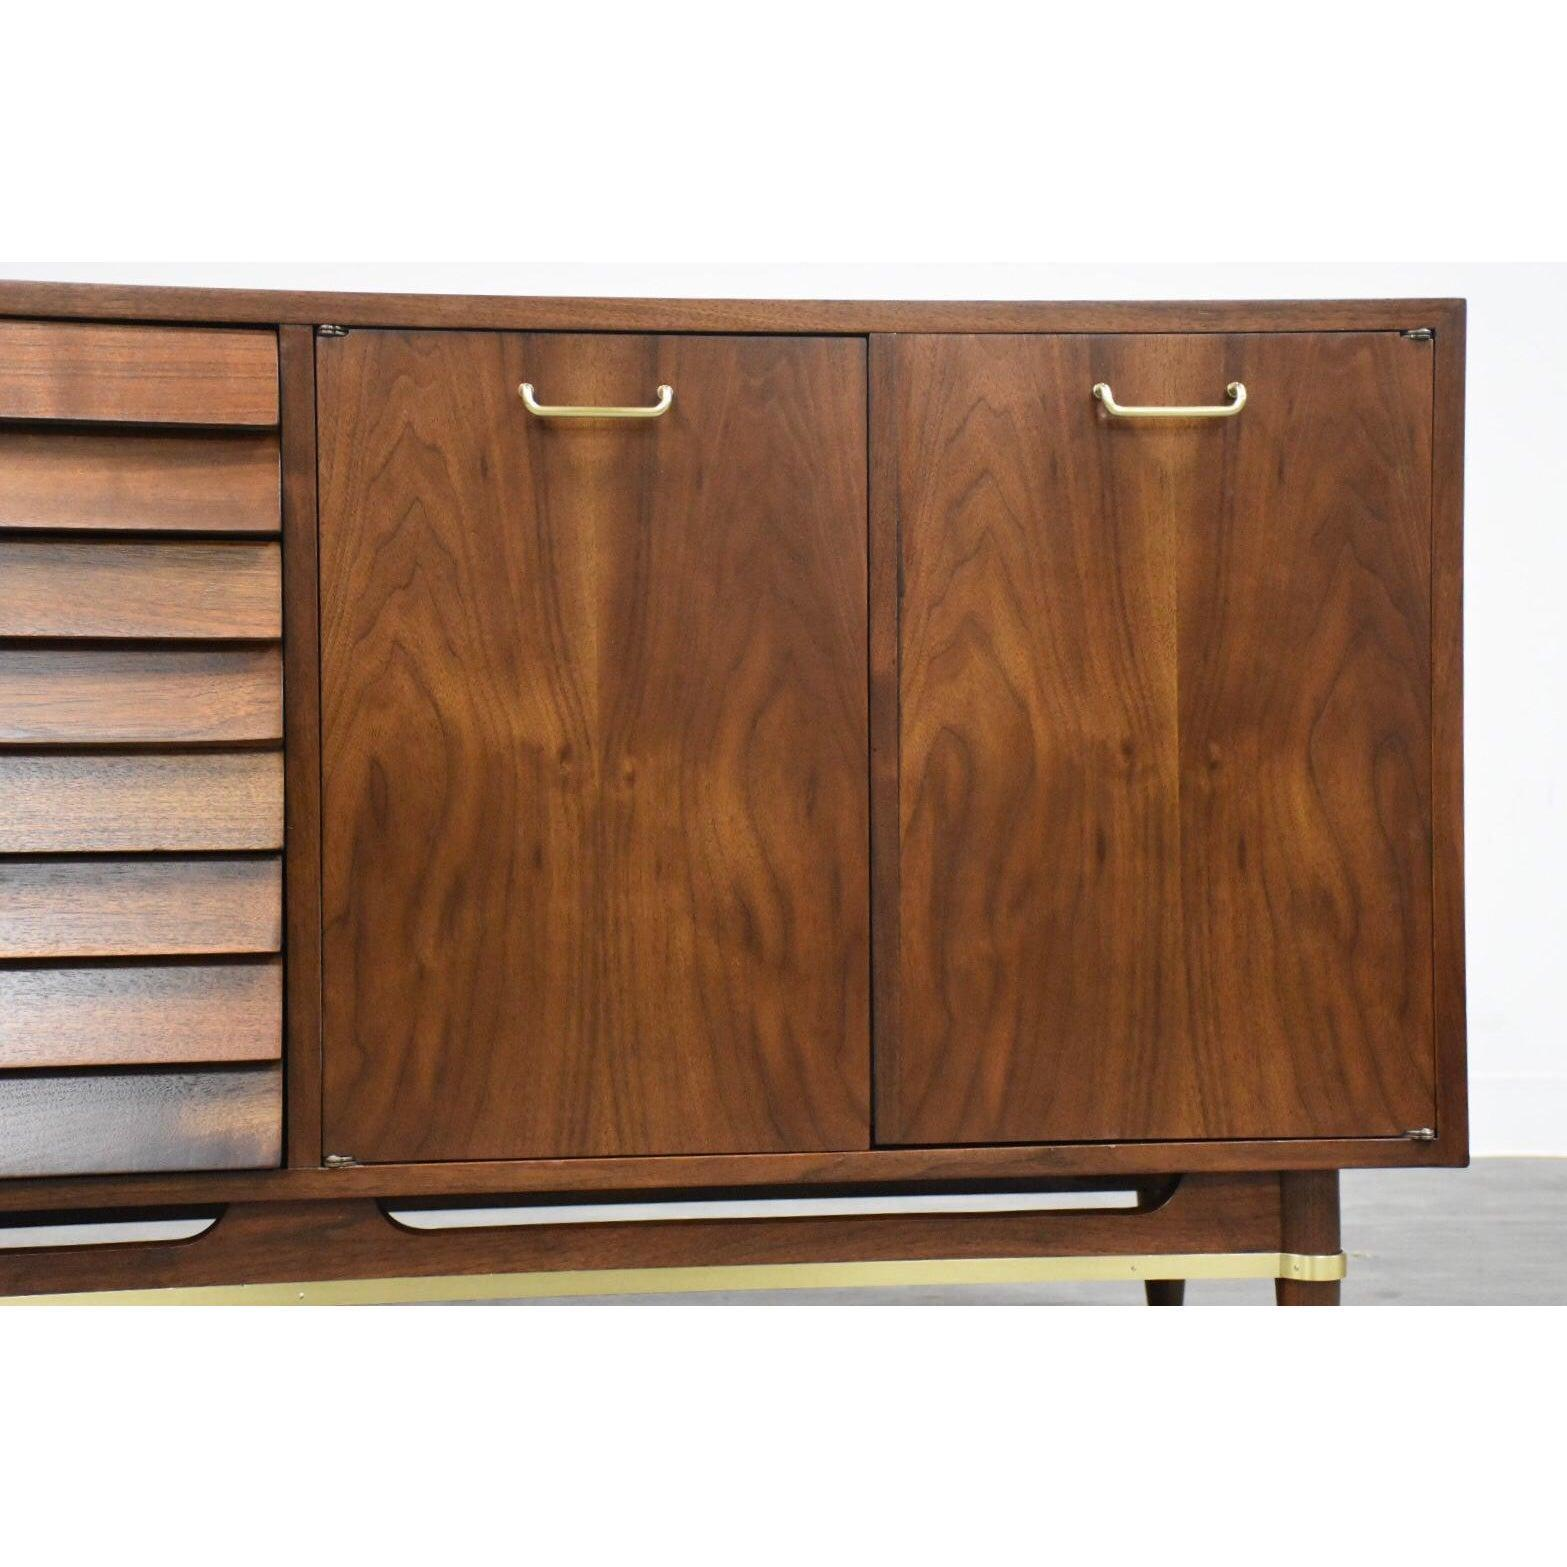 Aiken Complete Furniture American Of Martinsville: American Of Martinsville Walnut Credenza Dresser Mid